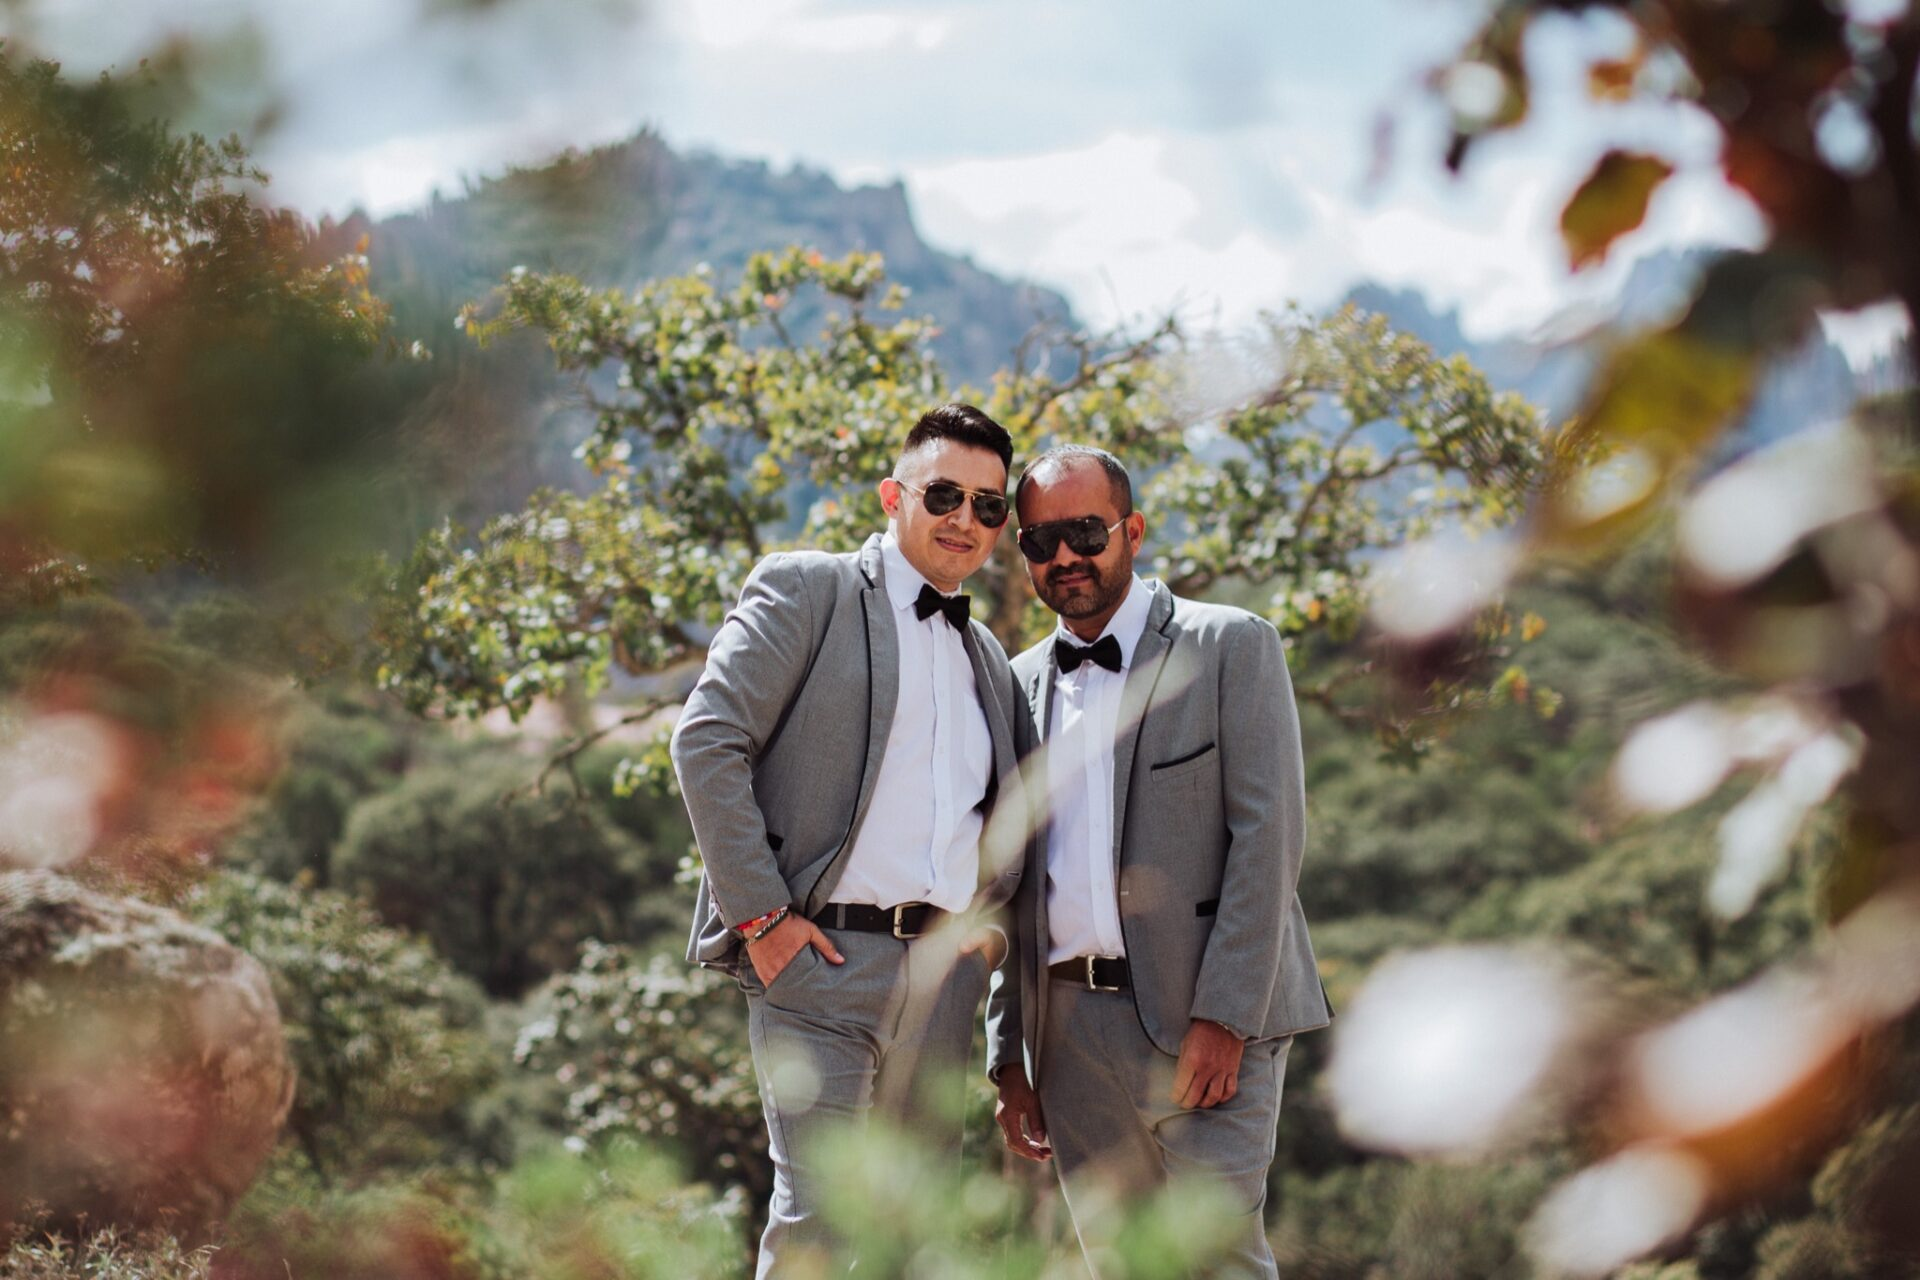 javier_noriega_fotografo_bodas_save_the_date_preboda_zacatecas_wedding_photographer2